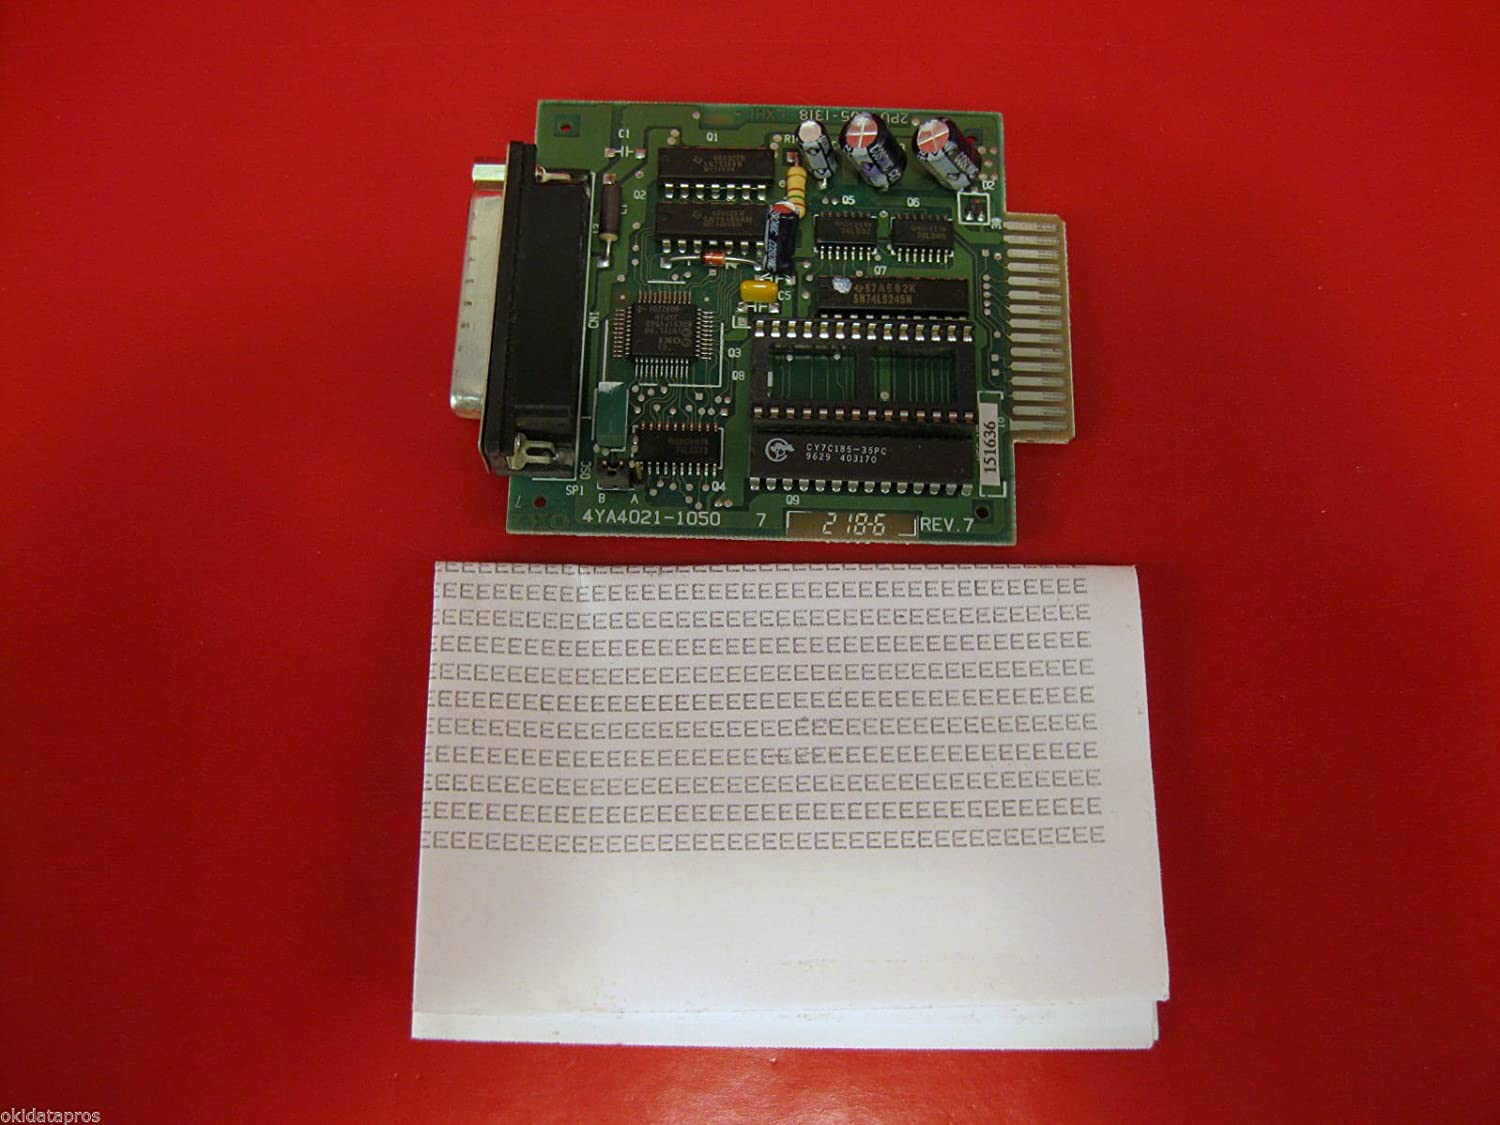 Oki Products - Oki - Internal RS-232C Interface for Okidata Microline ML-320/321/520/521/590/591 - Sold As 1 Each - Supports Ready/Busy/X-On/X-Off protocols - Compatible with ML320/321/390/391/420/421/490/491/520/521/590/591 series printers. - Can be conf